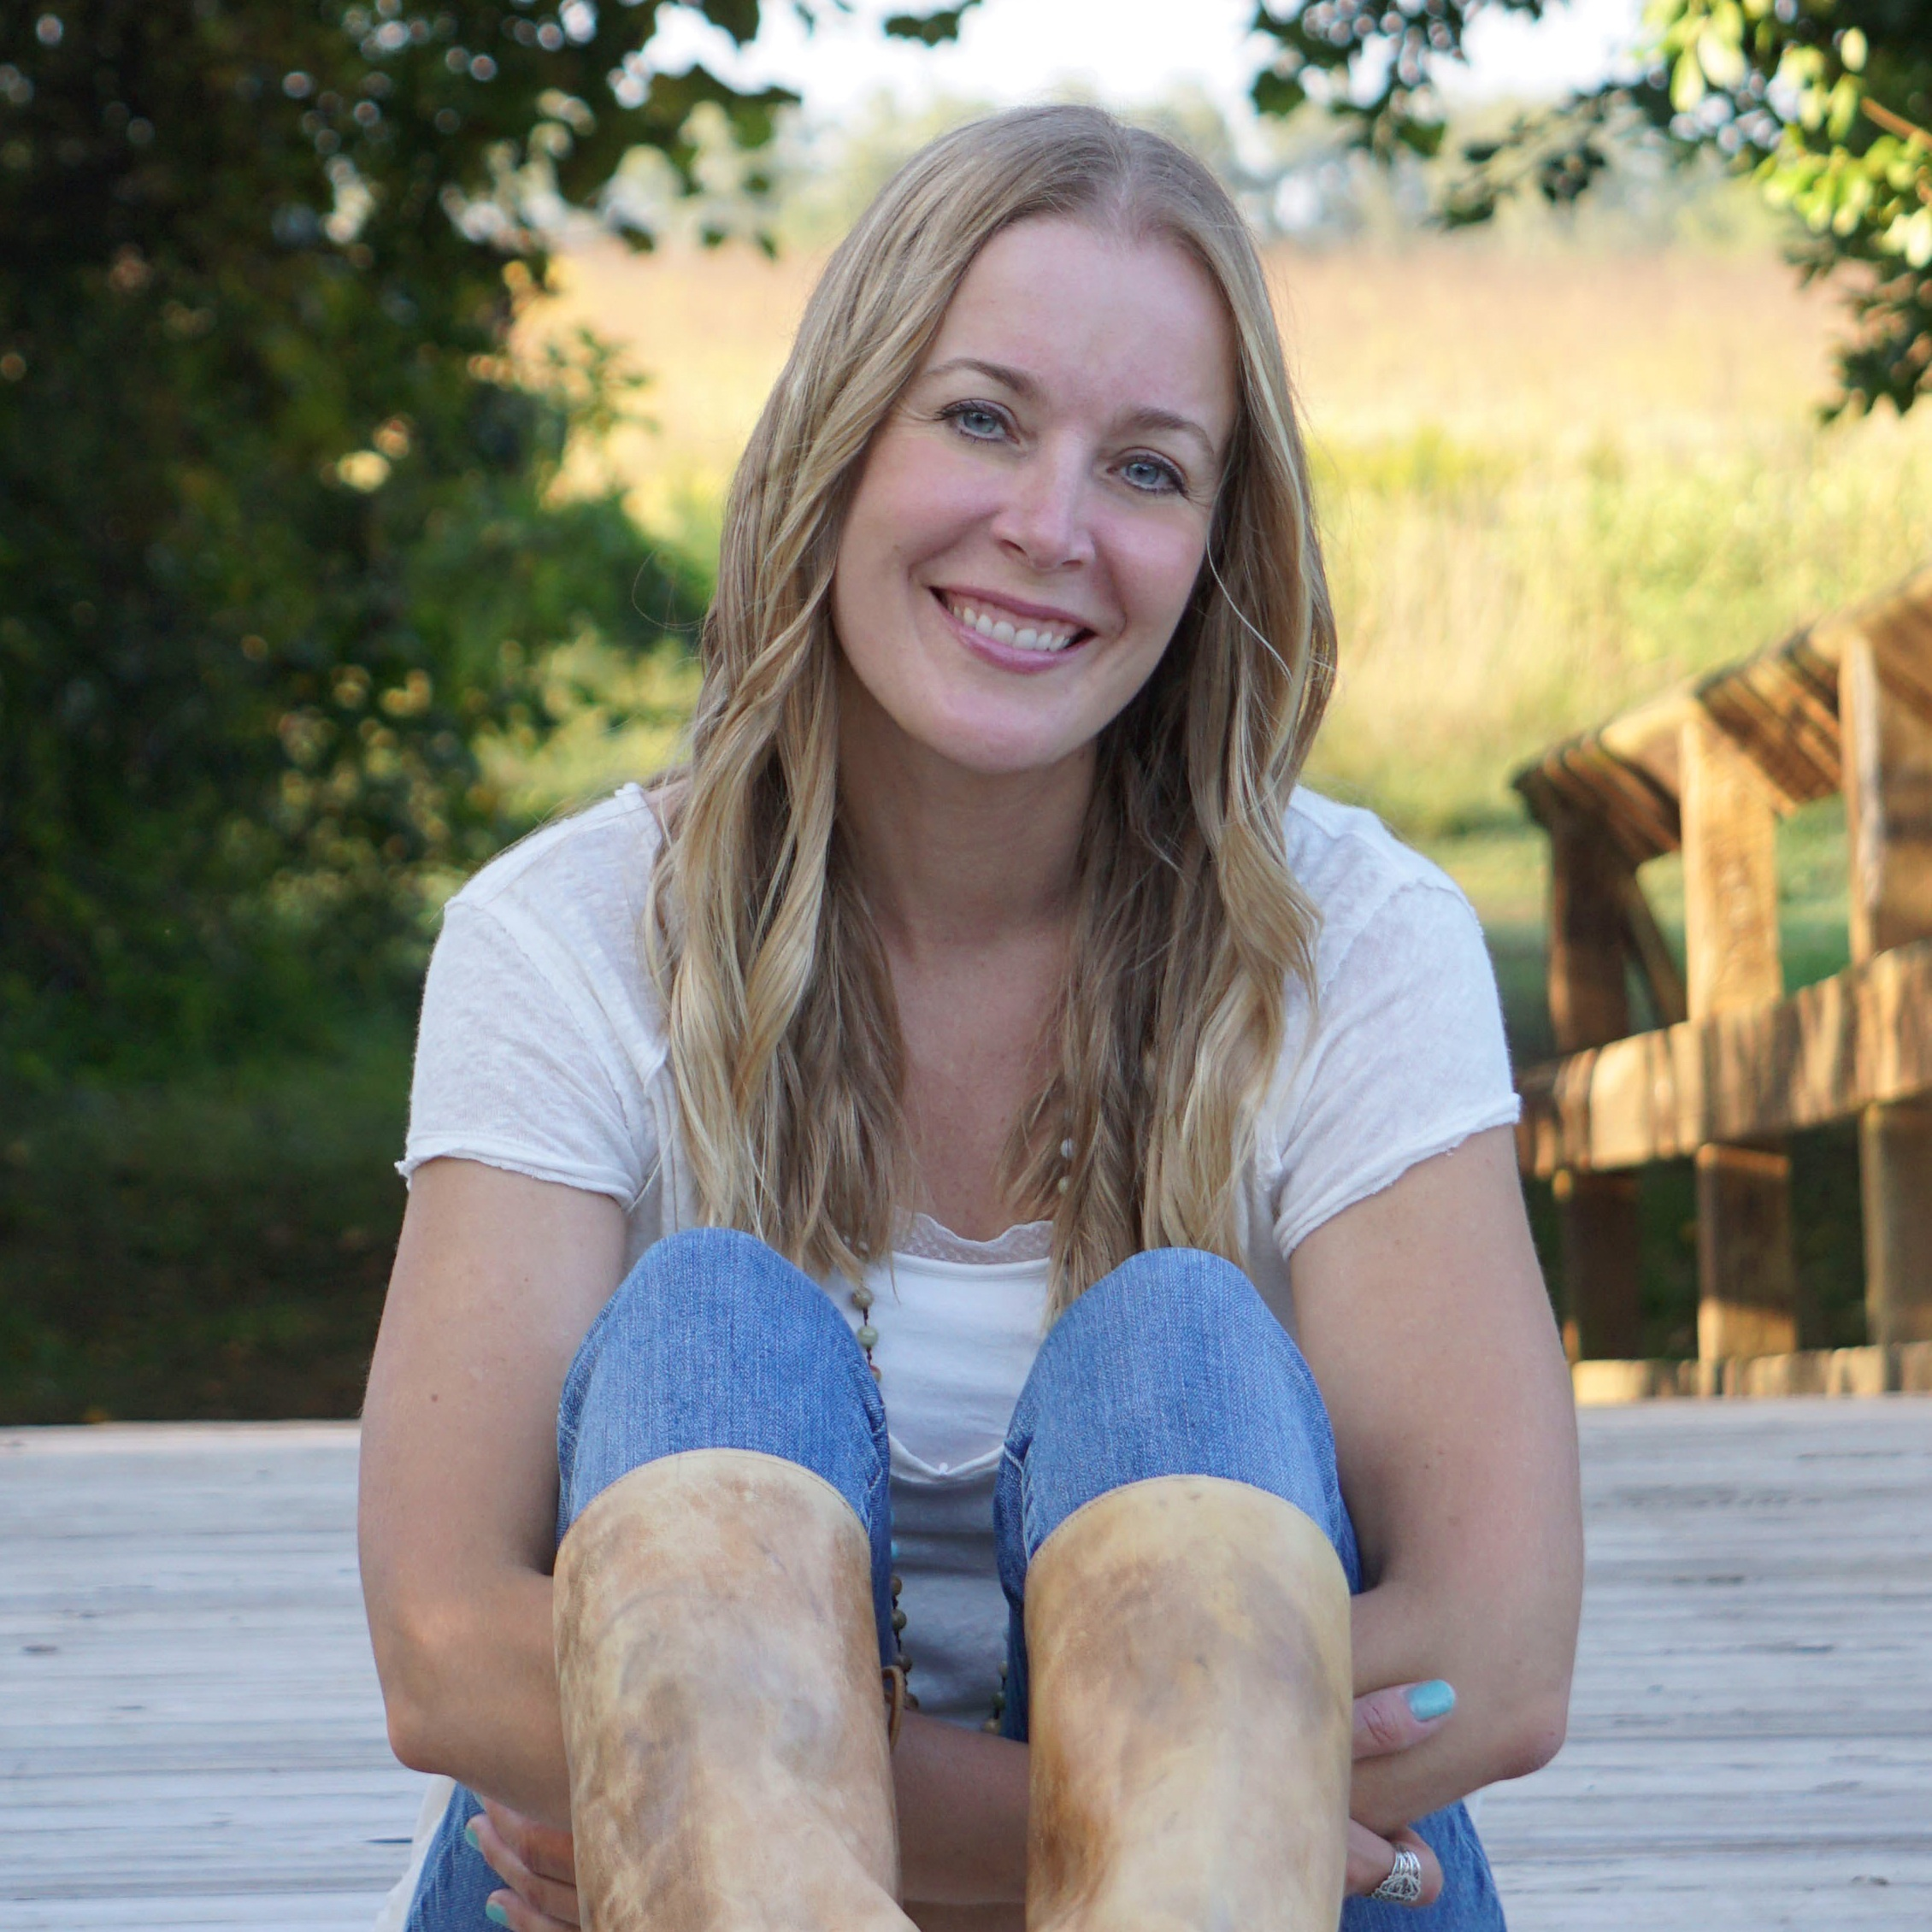 corinne zupko - Corinne  was diagnosed with her first anxiety disorder at a very young age and struggled with debilitating anxiety for nearly three decades. Determined not to let the anxiety run her life, she has since become an expert in undoing anxiety through living the principles from A Course in Miracles.